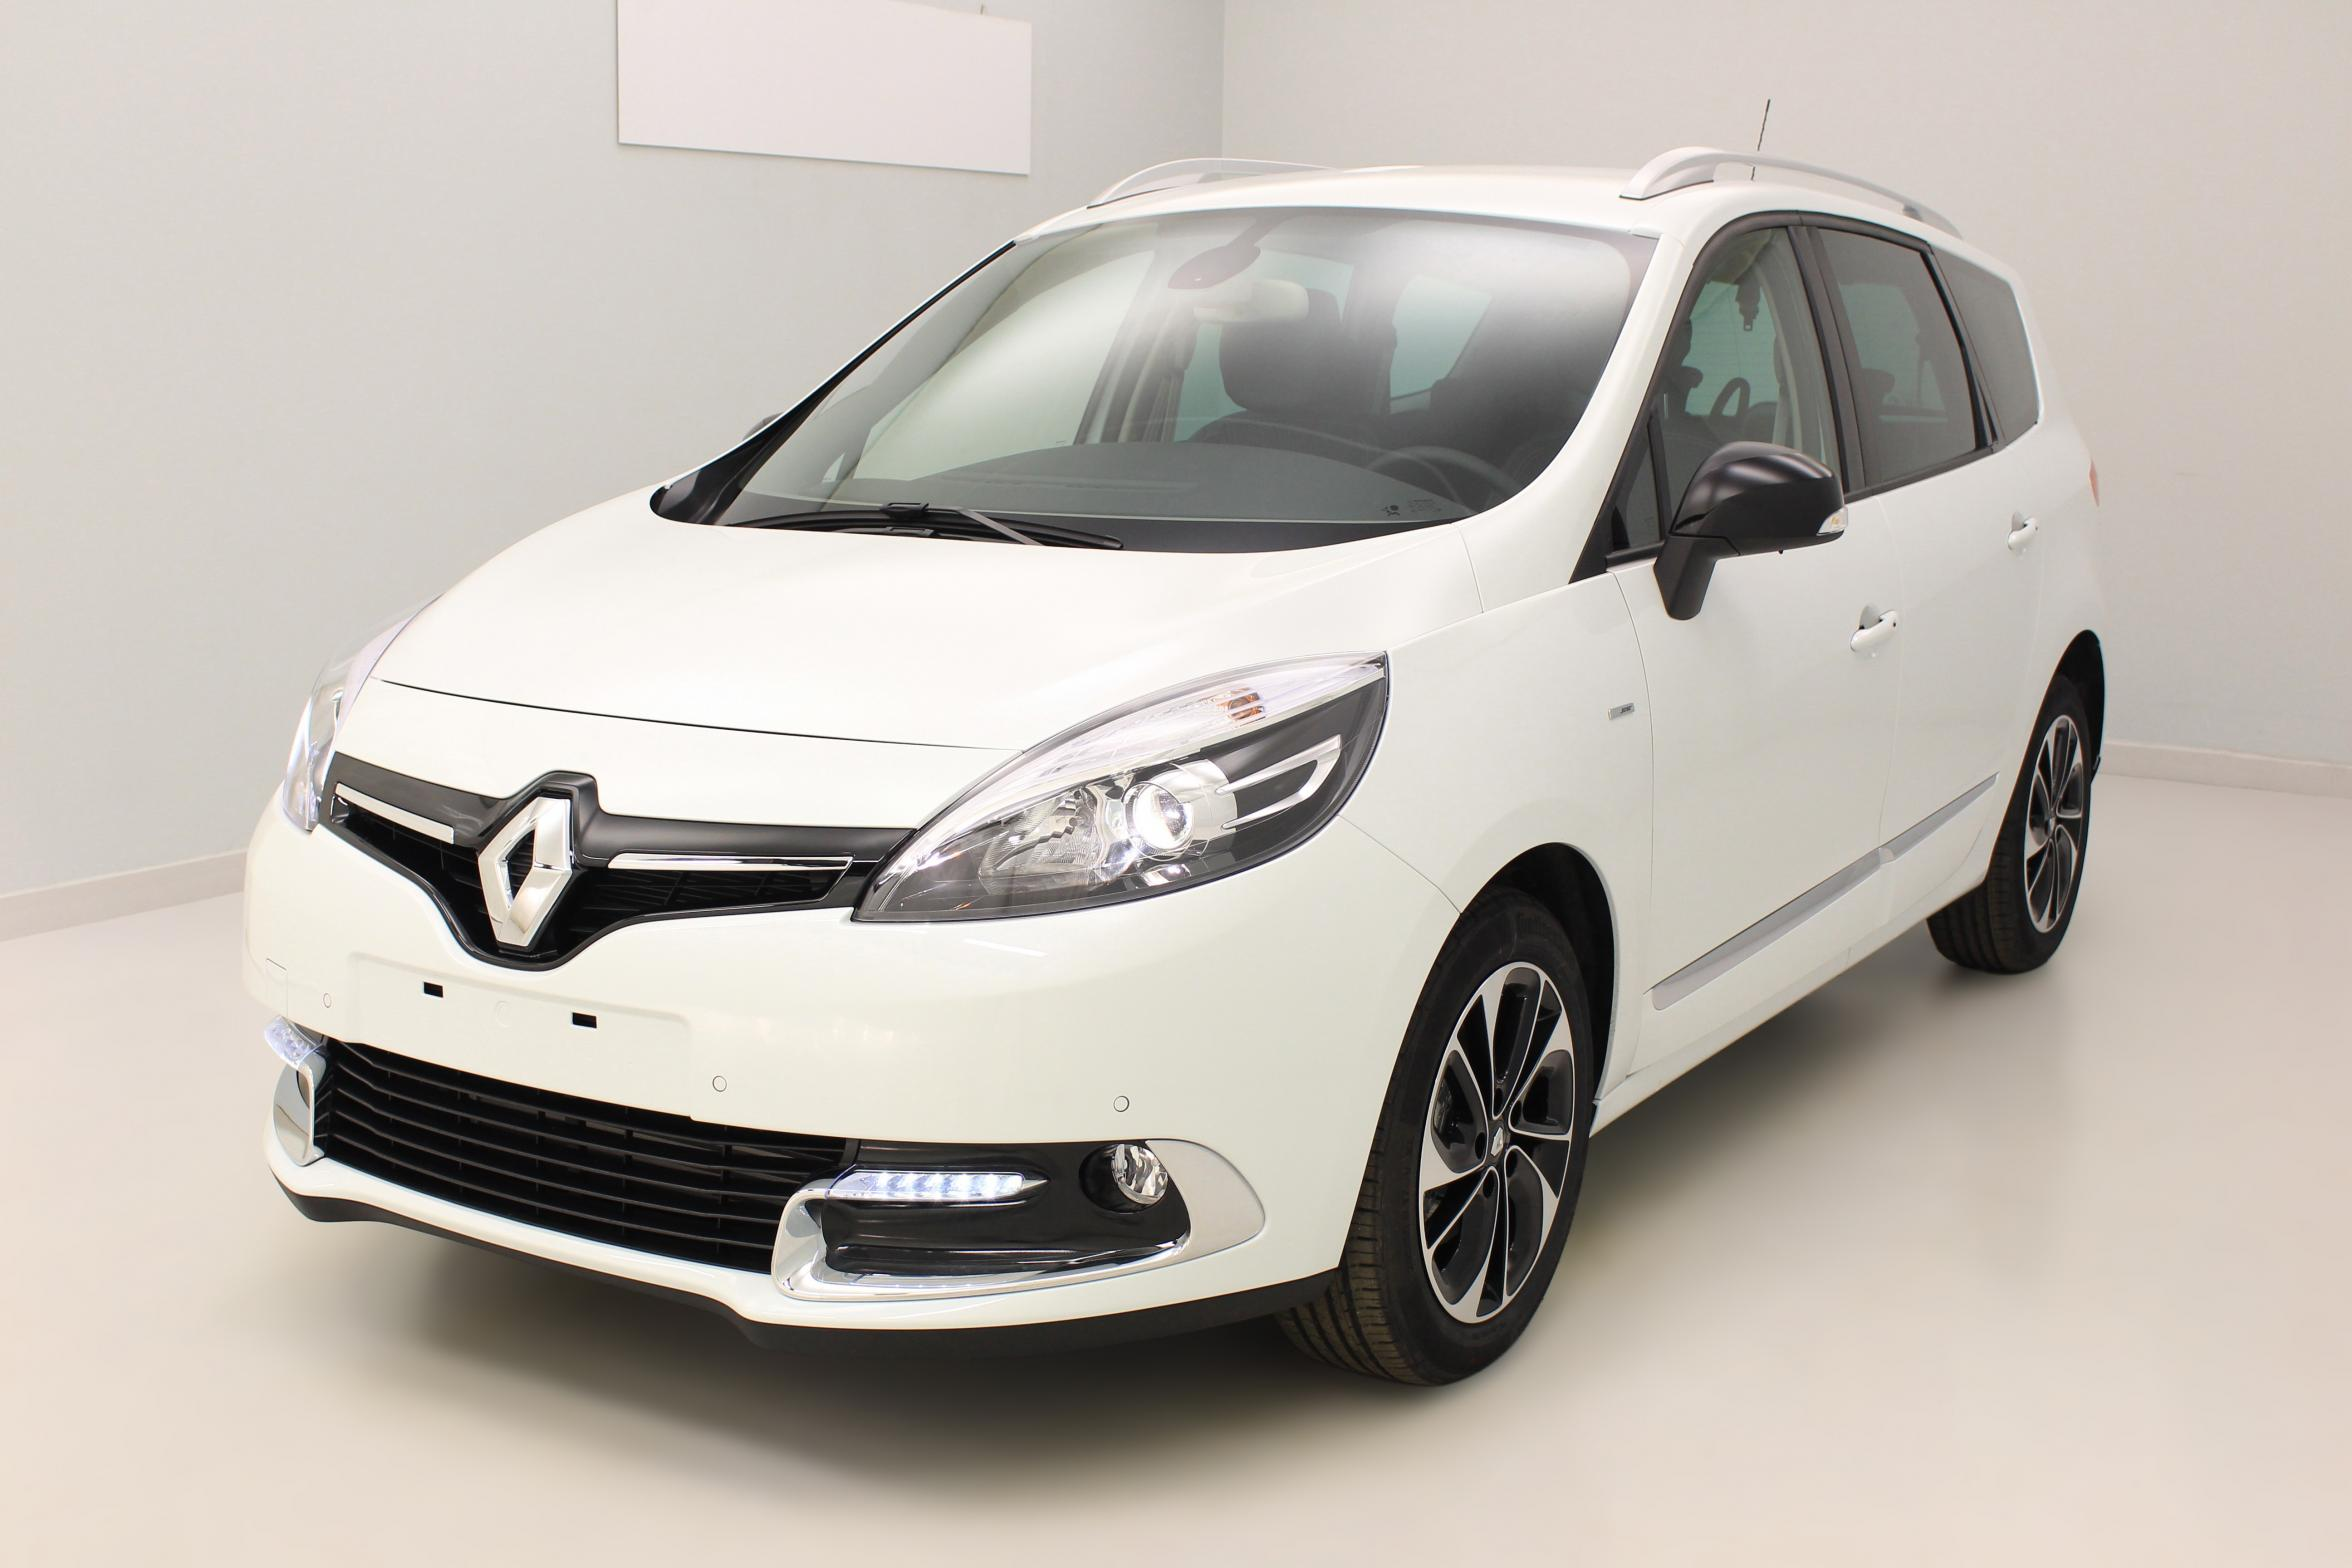 RENAULT Grand Scénic dCi 130 Energy Bose Edition 7 pl Blanc Nacré avec options